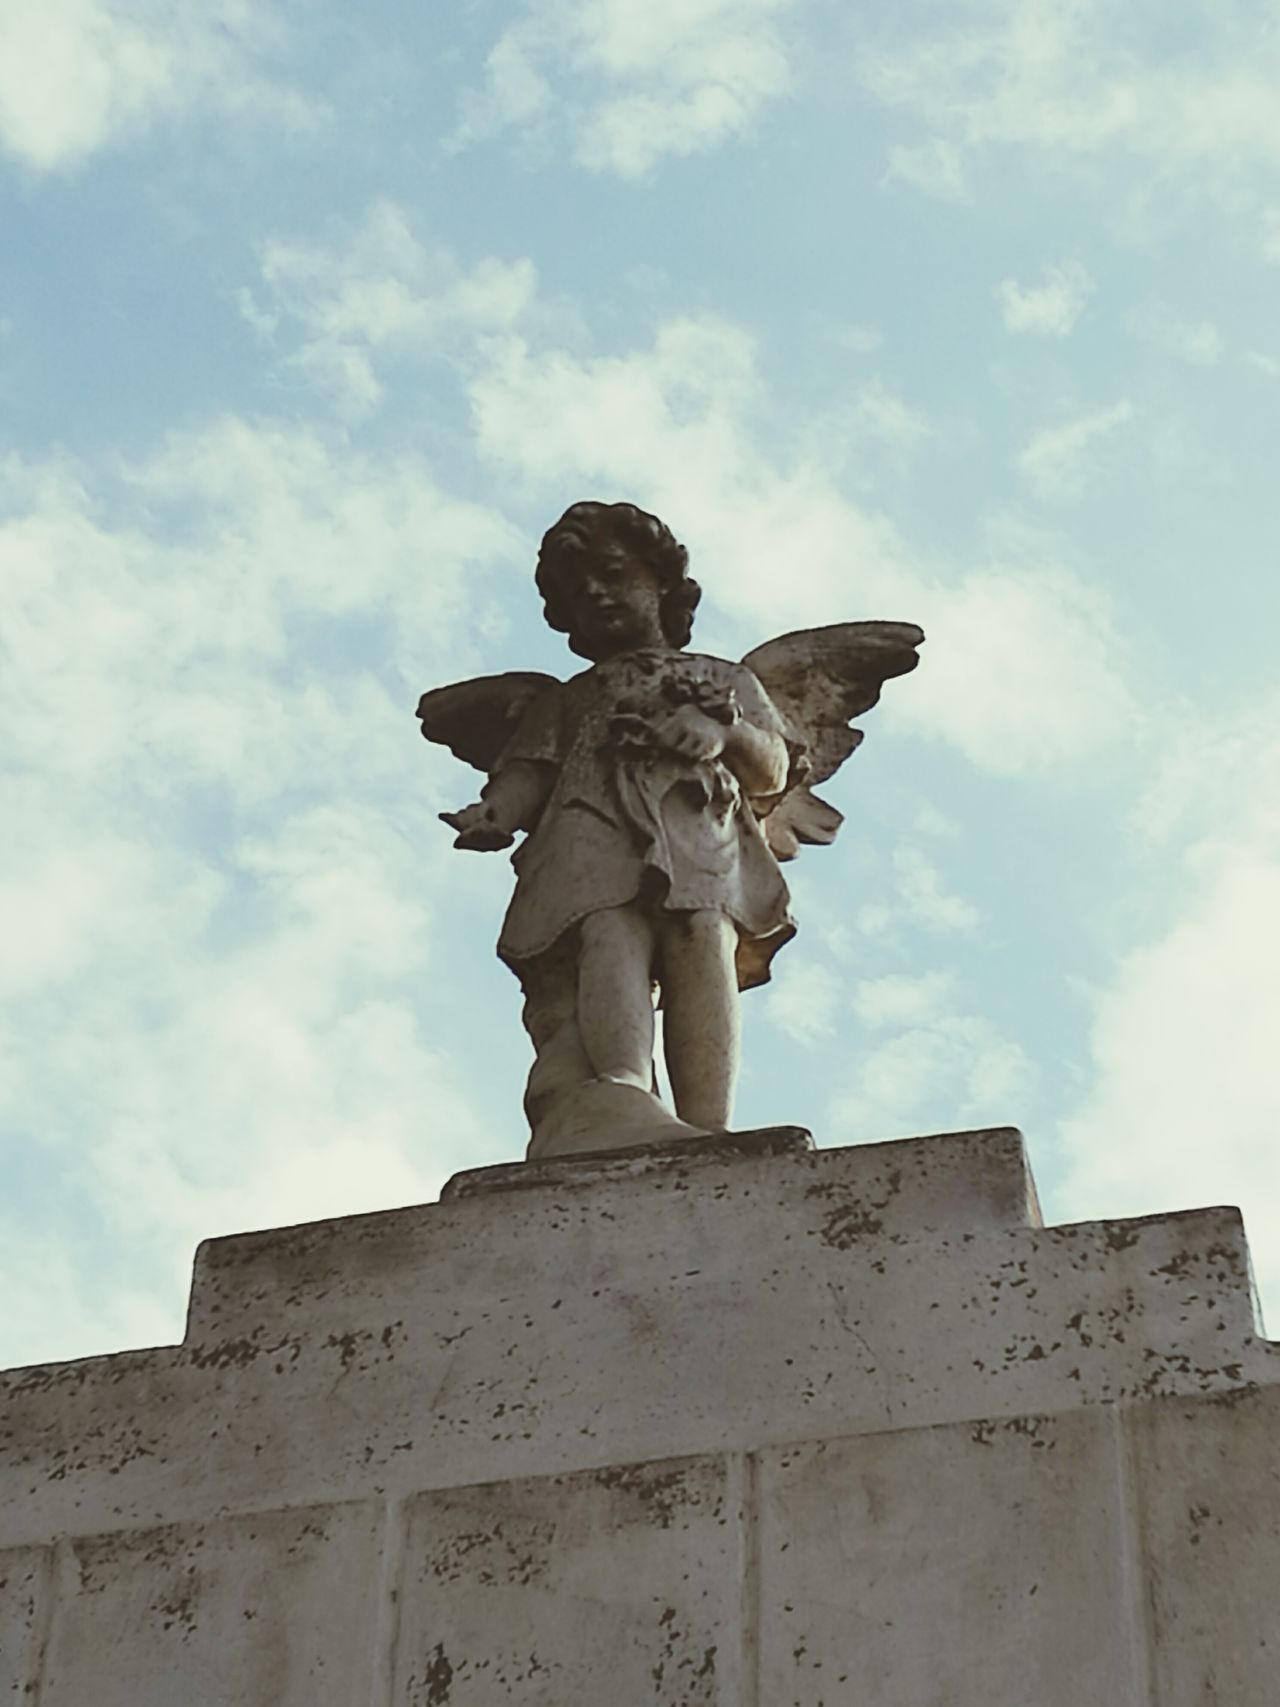 Angel Wings Sculpture Statue Art And Craft Human Representation History Low Angle View Travel Destinations Sky Day No People Outdoors Architecture